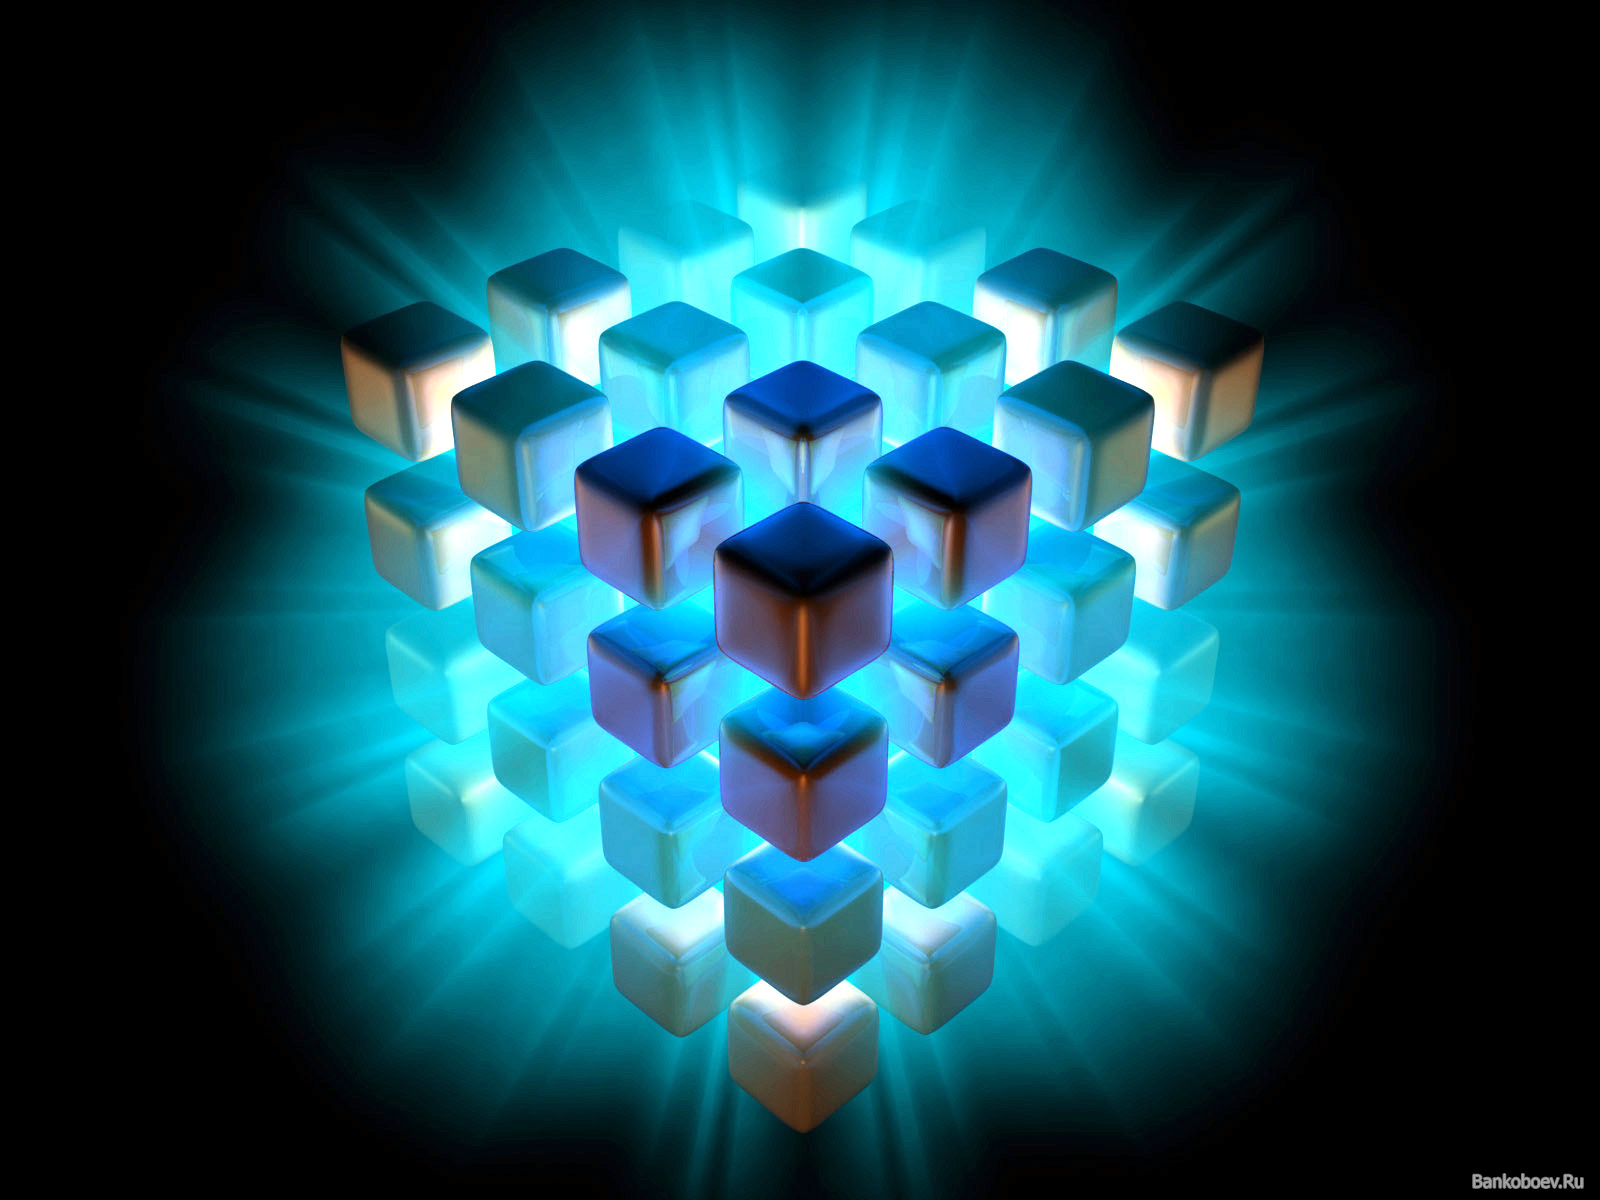 HD Wallpapers 87: 3d Graphics Cubes